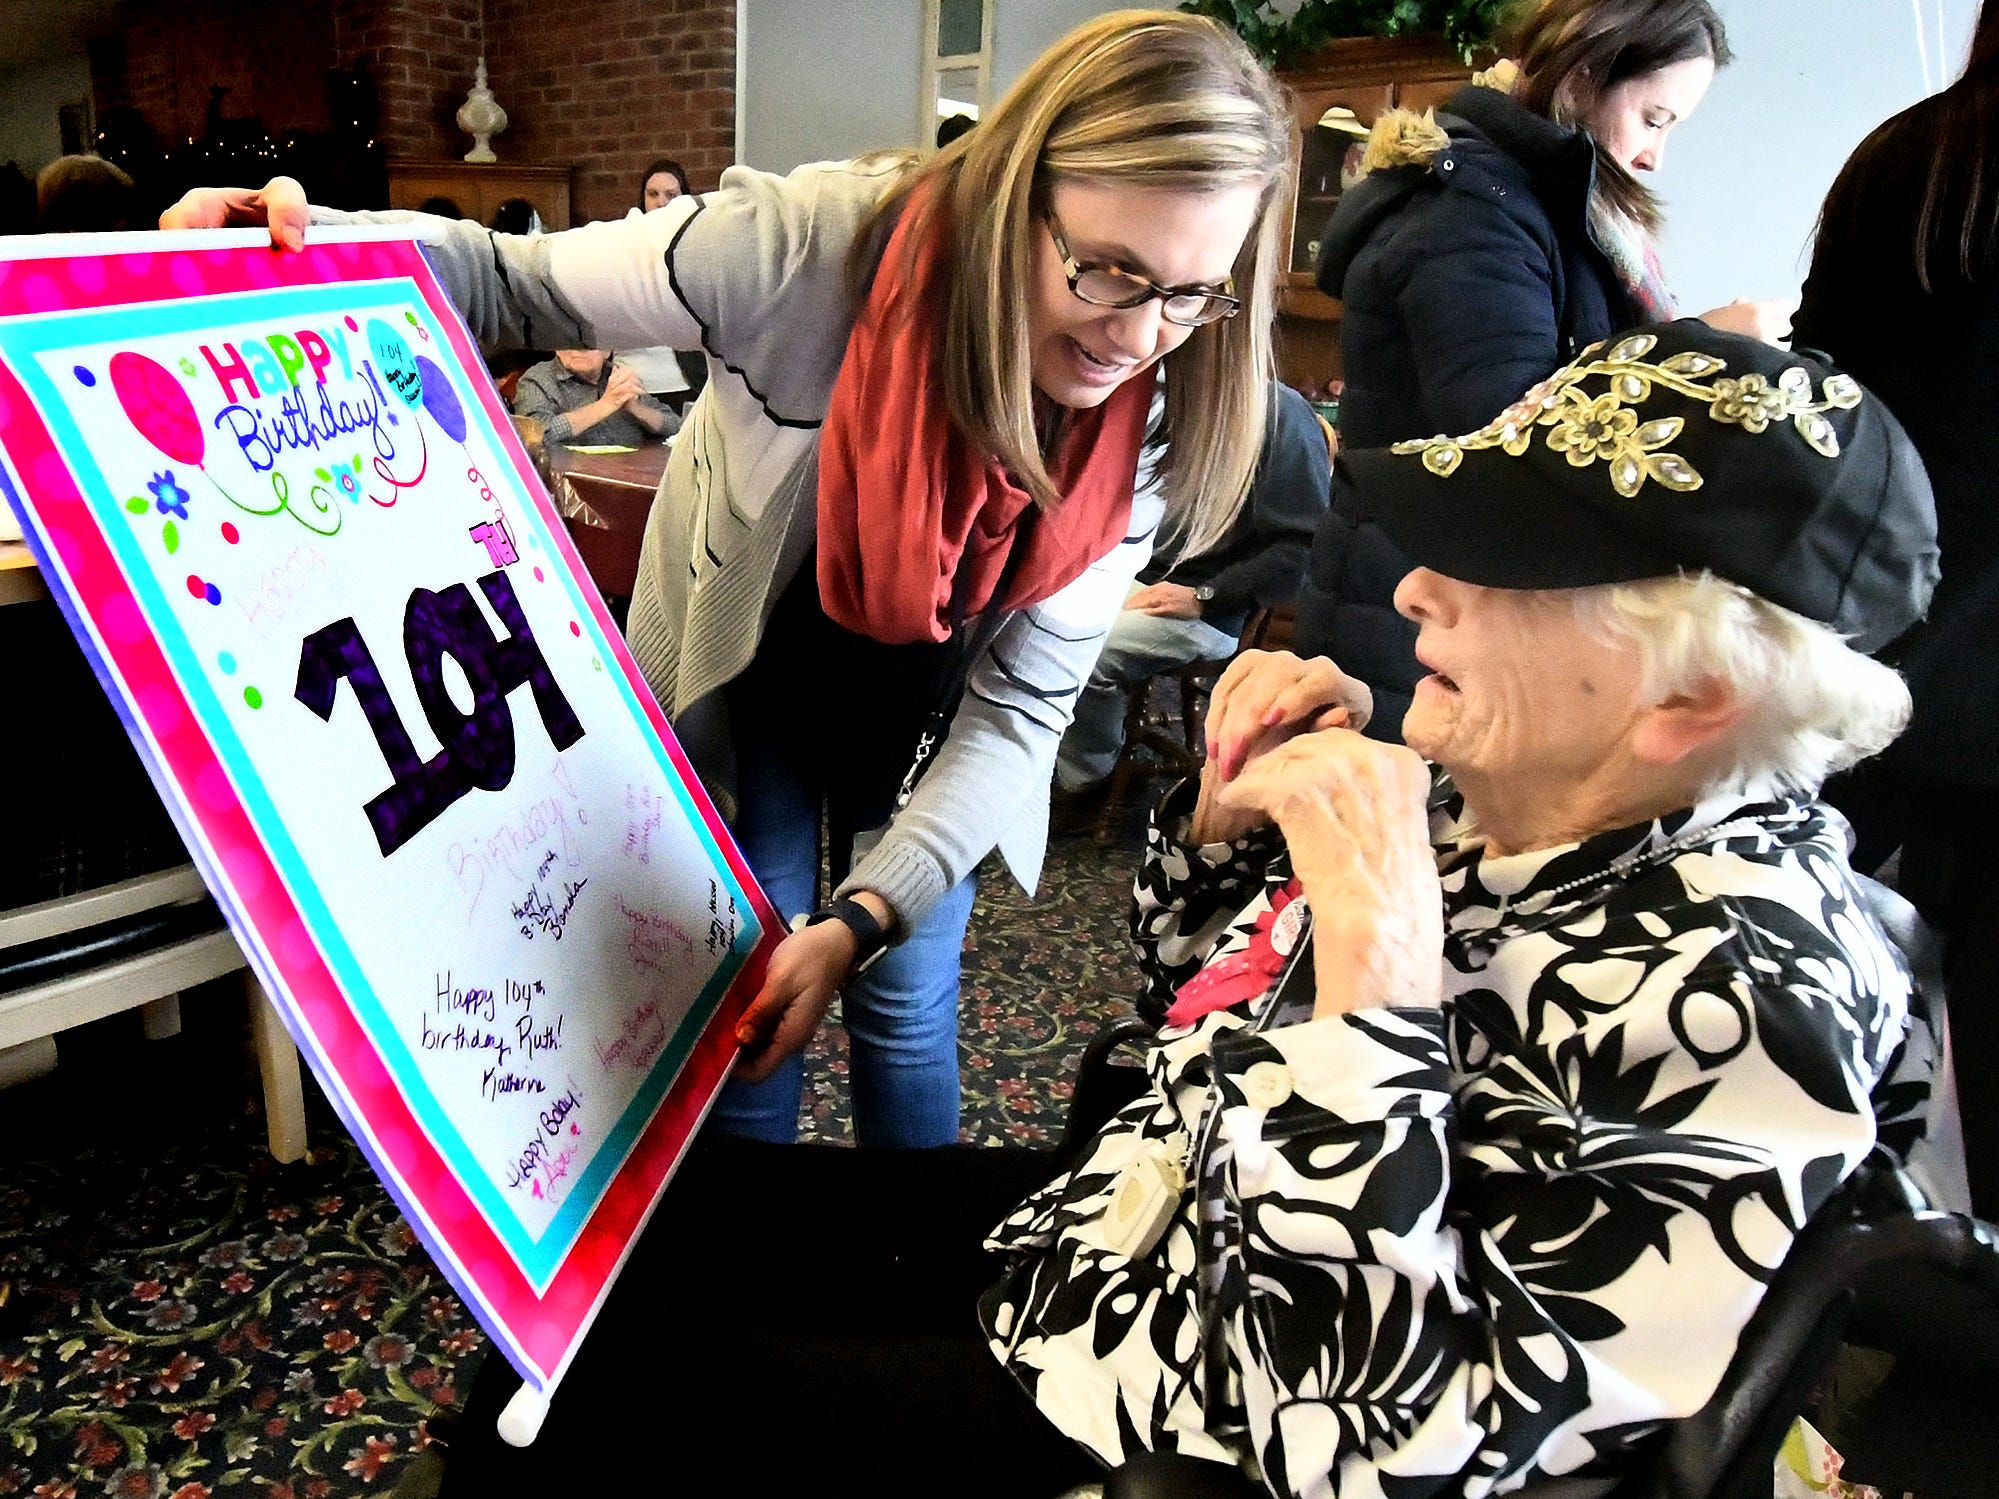 Memorial White Rose Home Health and Hospice social worker Katherine Walker shows Ruth Kohler a banner her staff made for Ruth's 104th birthday celebration at Senior Commons at Powder Mill where she is a resident Friday, Feb. 1, 2019. According to Senior Commons staff, Ruth is the oldest resident to have lived there. Bill Kalina photo